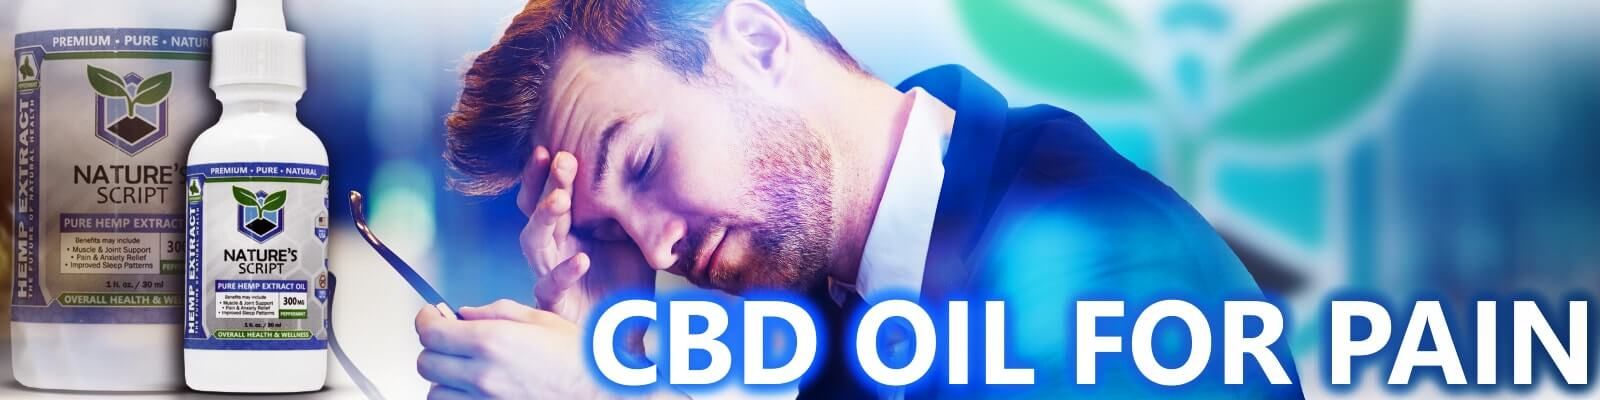 man in suit holding his head cbd oil for pain banner